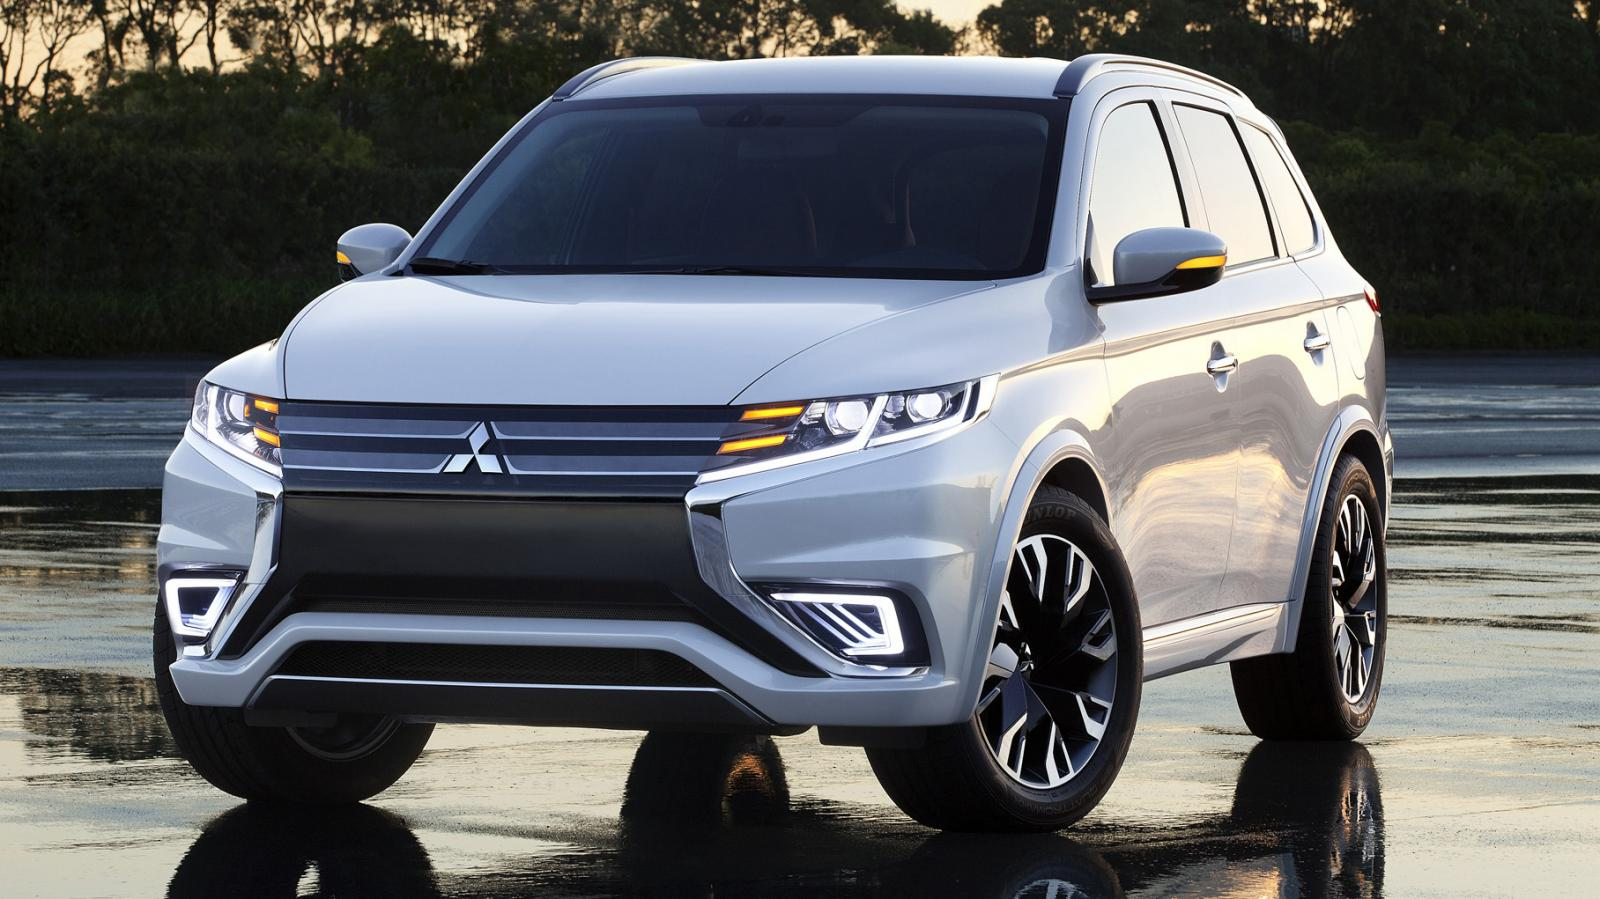 Mitsubishi Outlander Phev Concept S Previewed Ahead Of